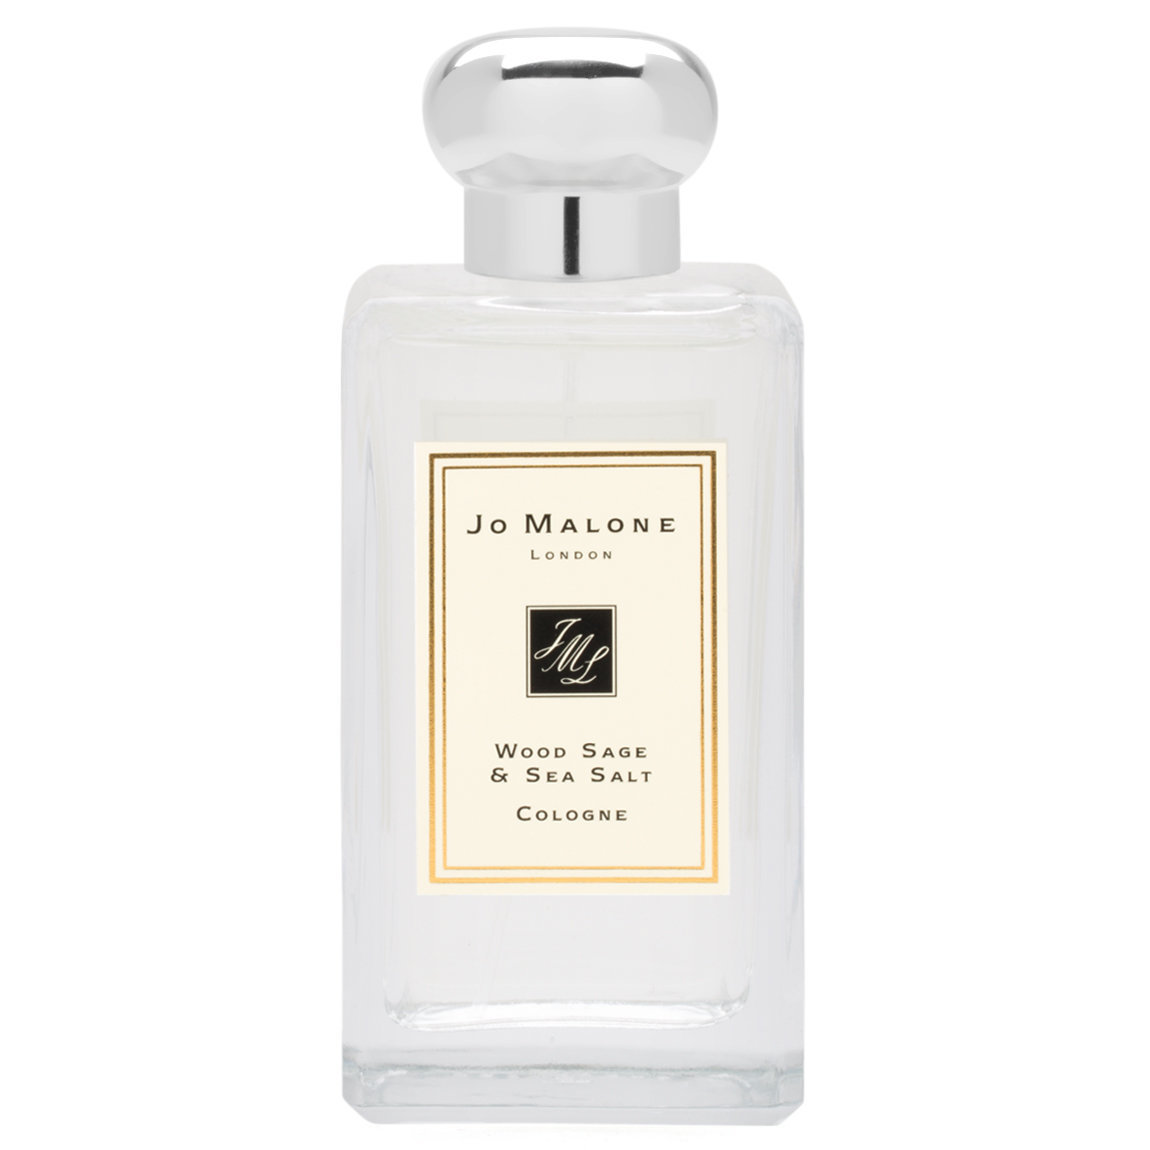 Jo Malone London Wood Sage & Sea Salt Cologne 100 ml product swatch.